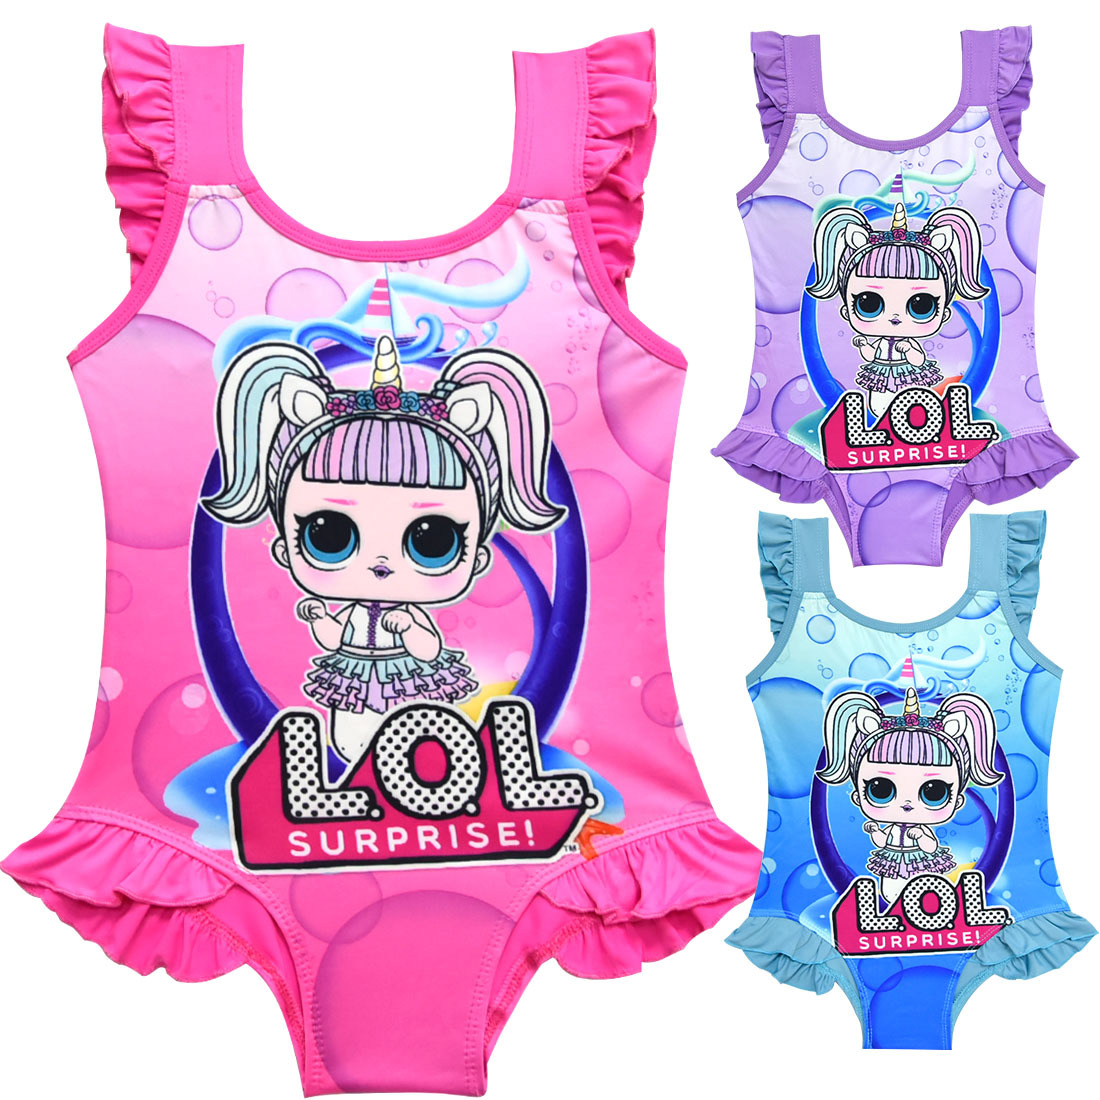 c1e1d9b259 Buy baby girl swim dress and get free shipping on AliExpress.com